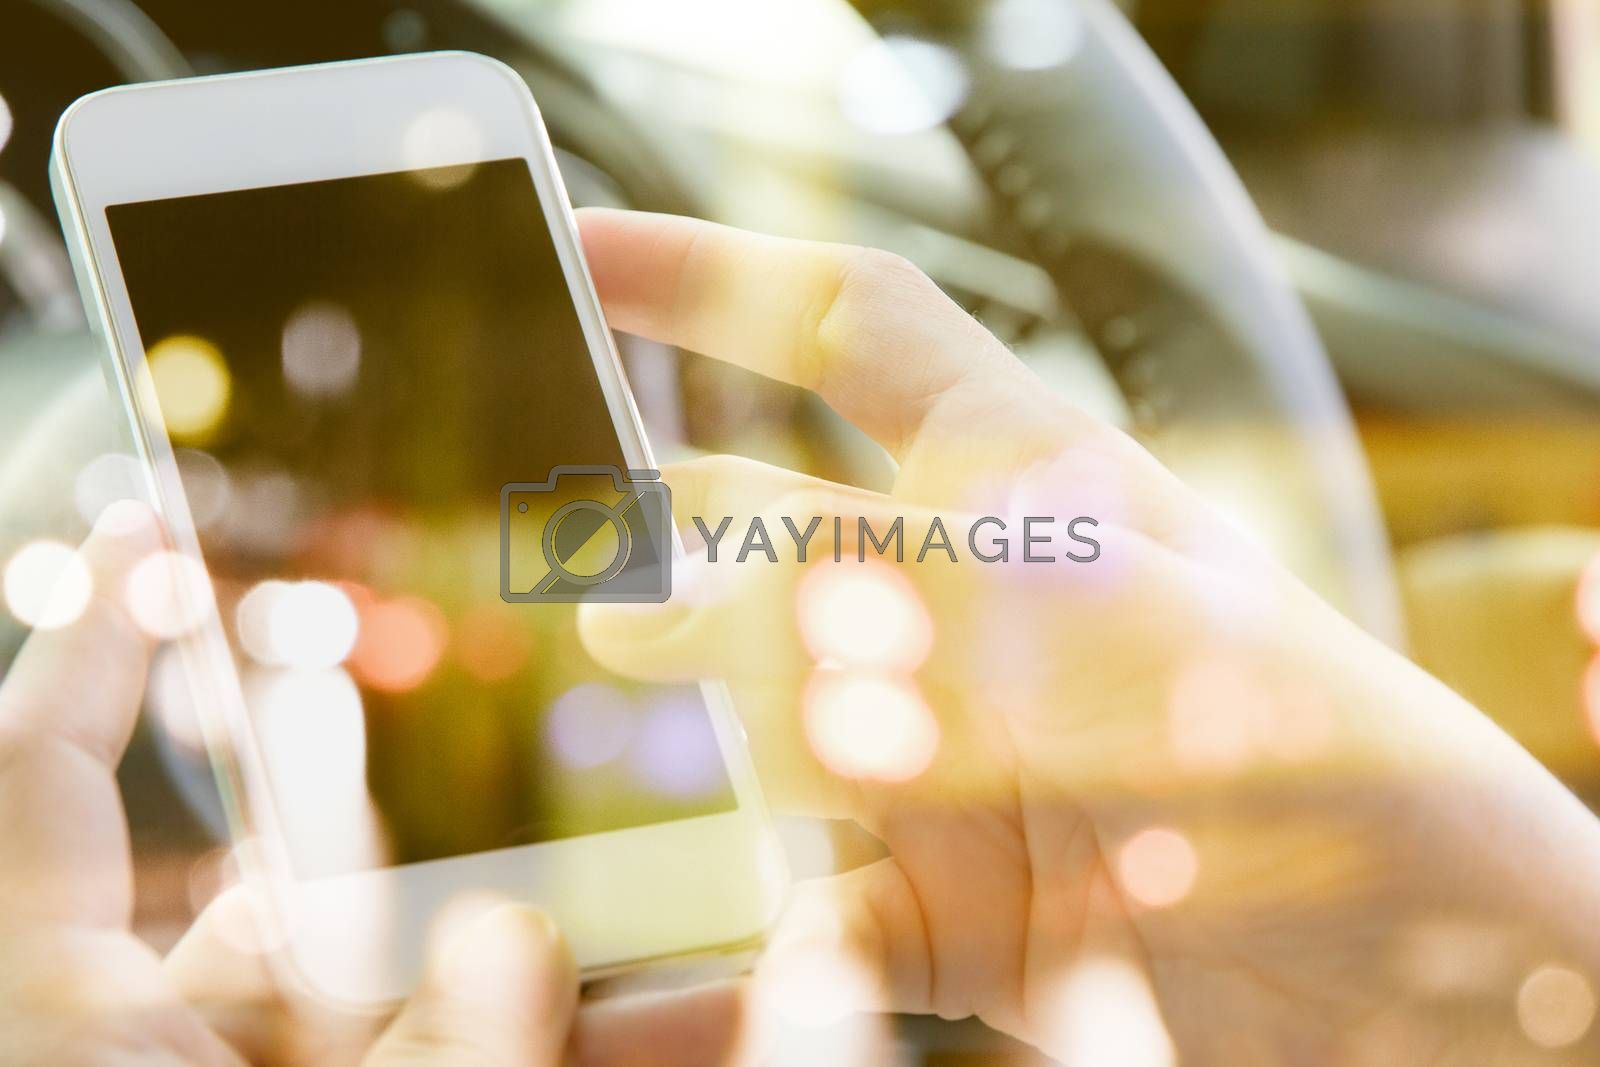 communication technology concept. image of people sitting in the car using smart phone double exposure and blurred view of car on street at night